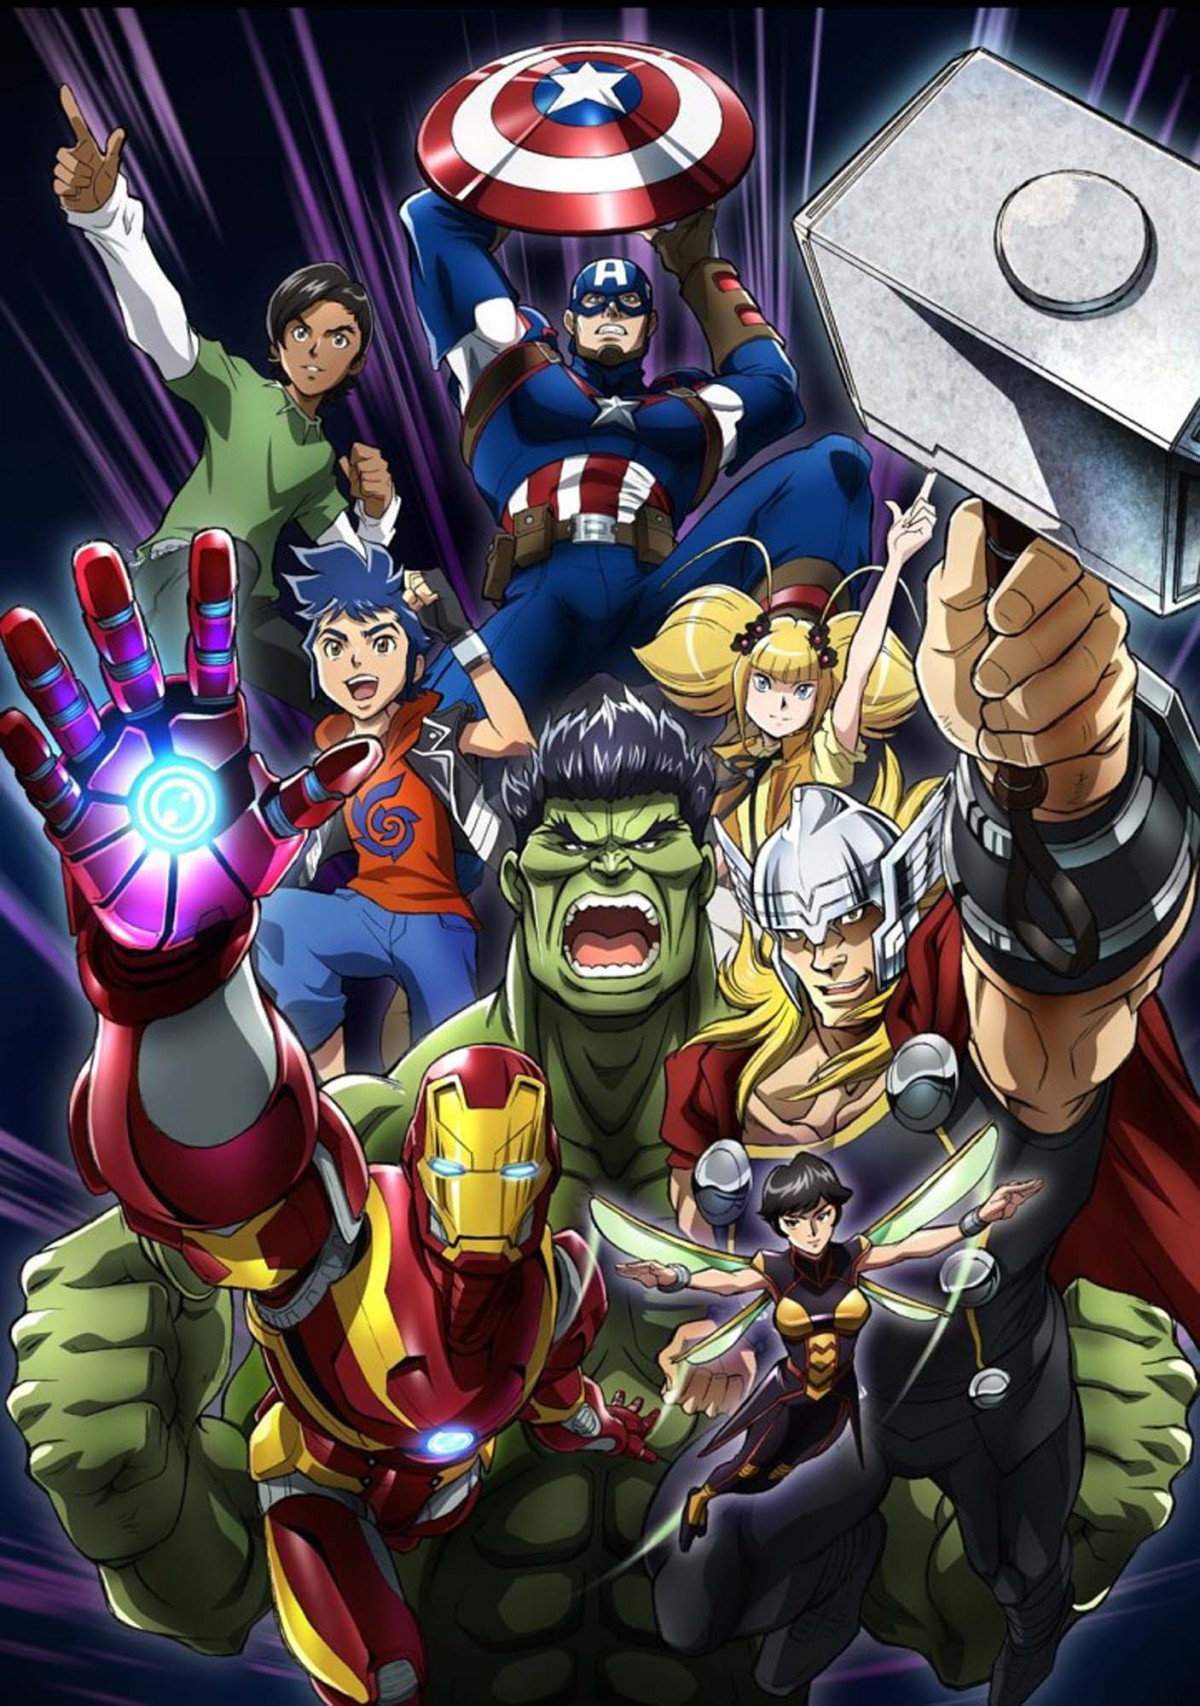 marvels-new-anime-marvel-future-avengers-is-coming-out-this-summer11